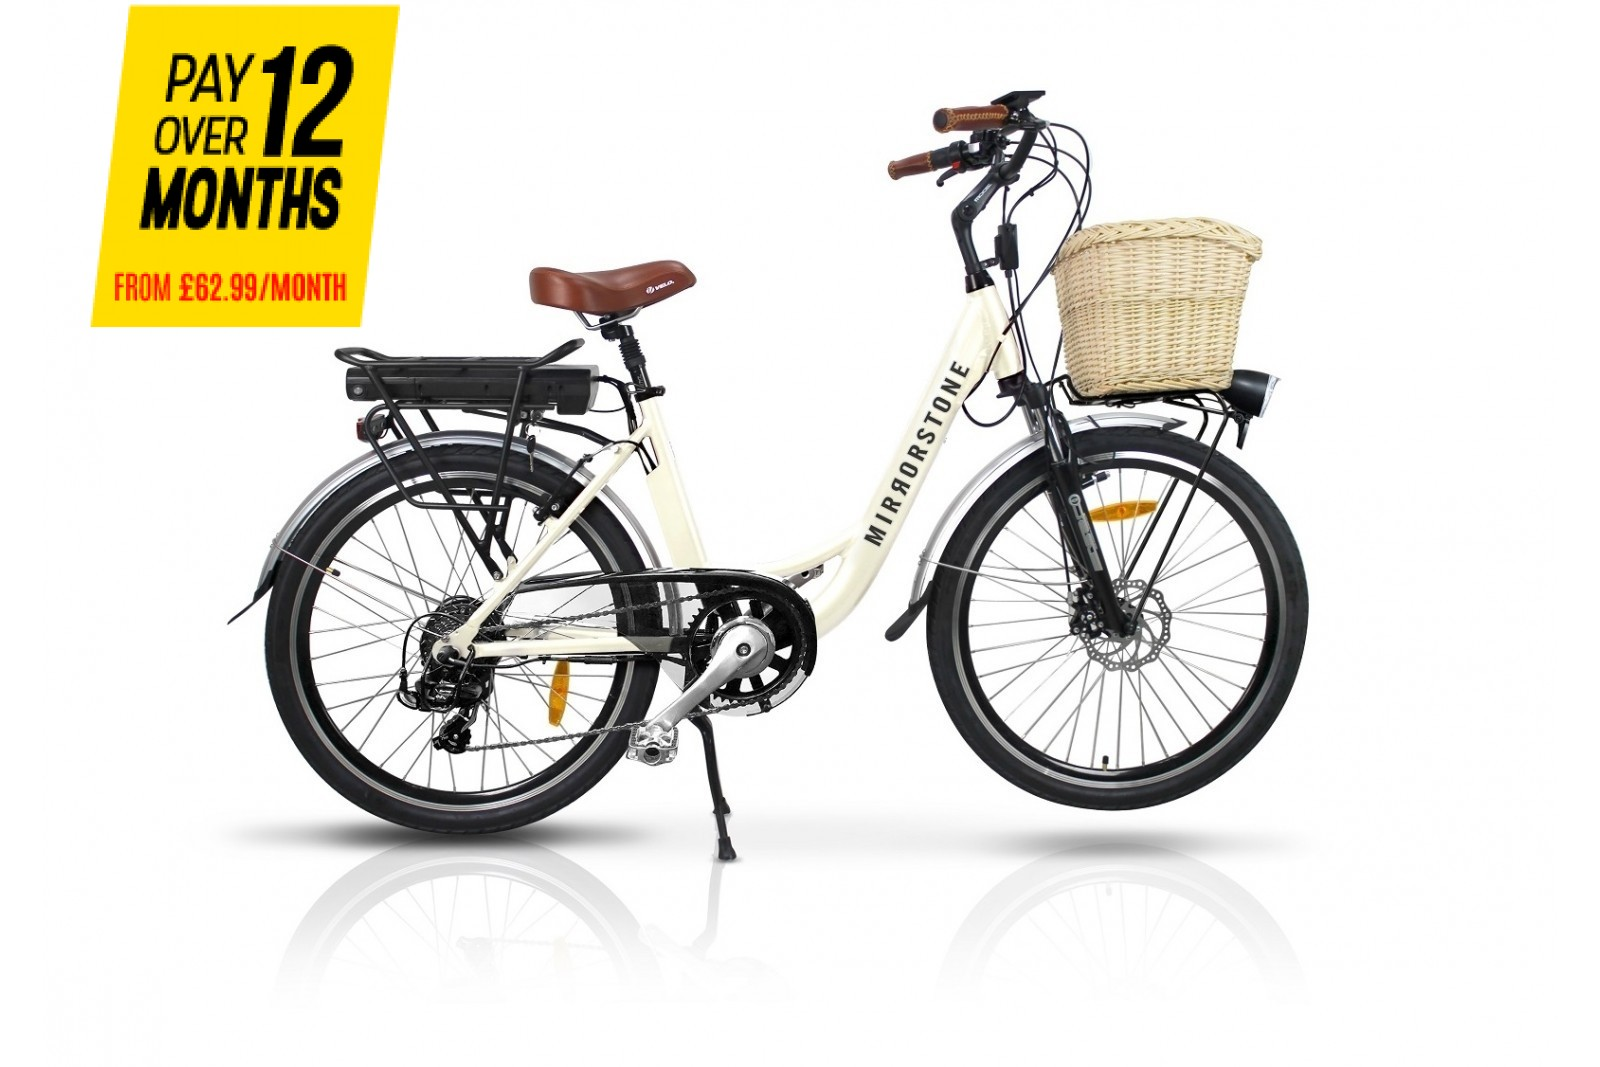 Sprint Electric Bike Milky White Wheels - Last bike Remaining - Buy Now!